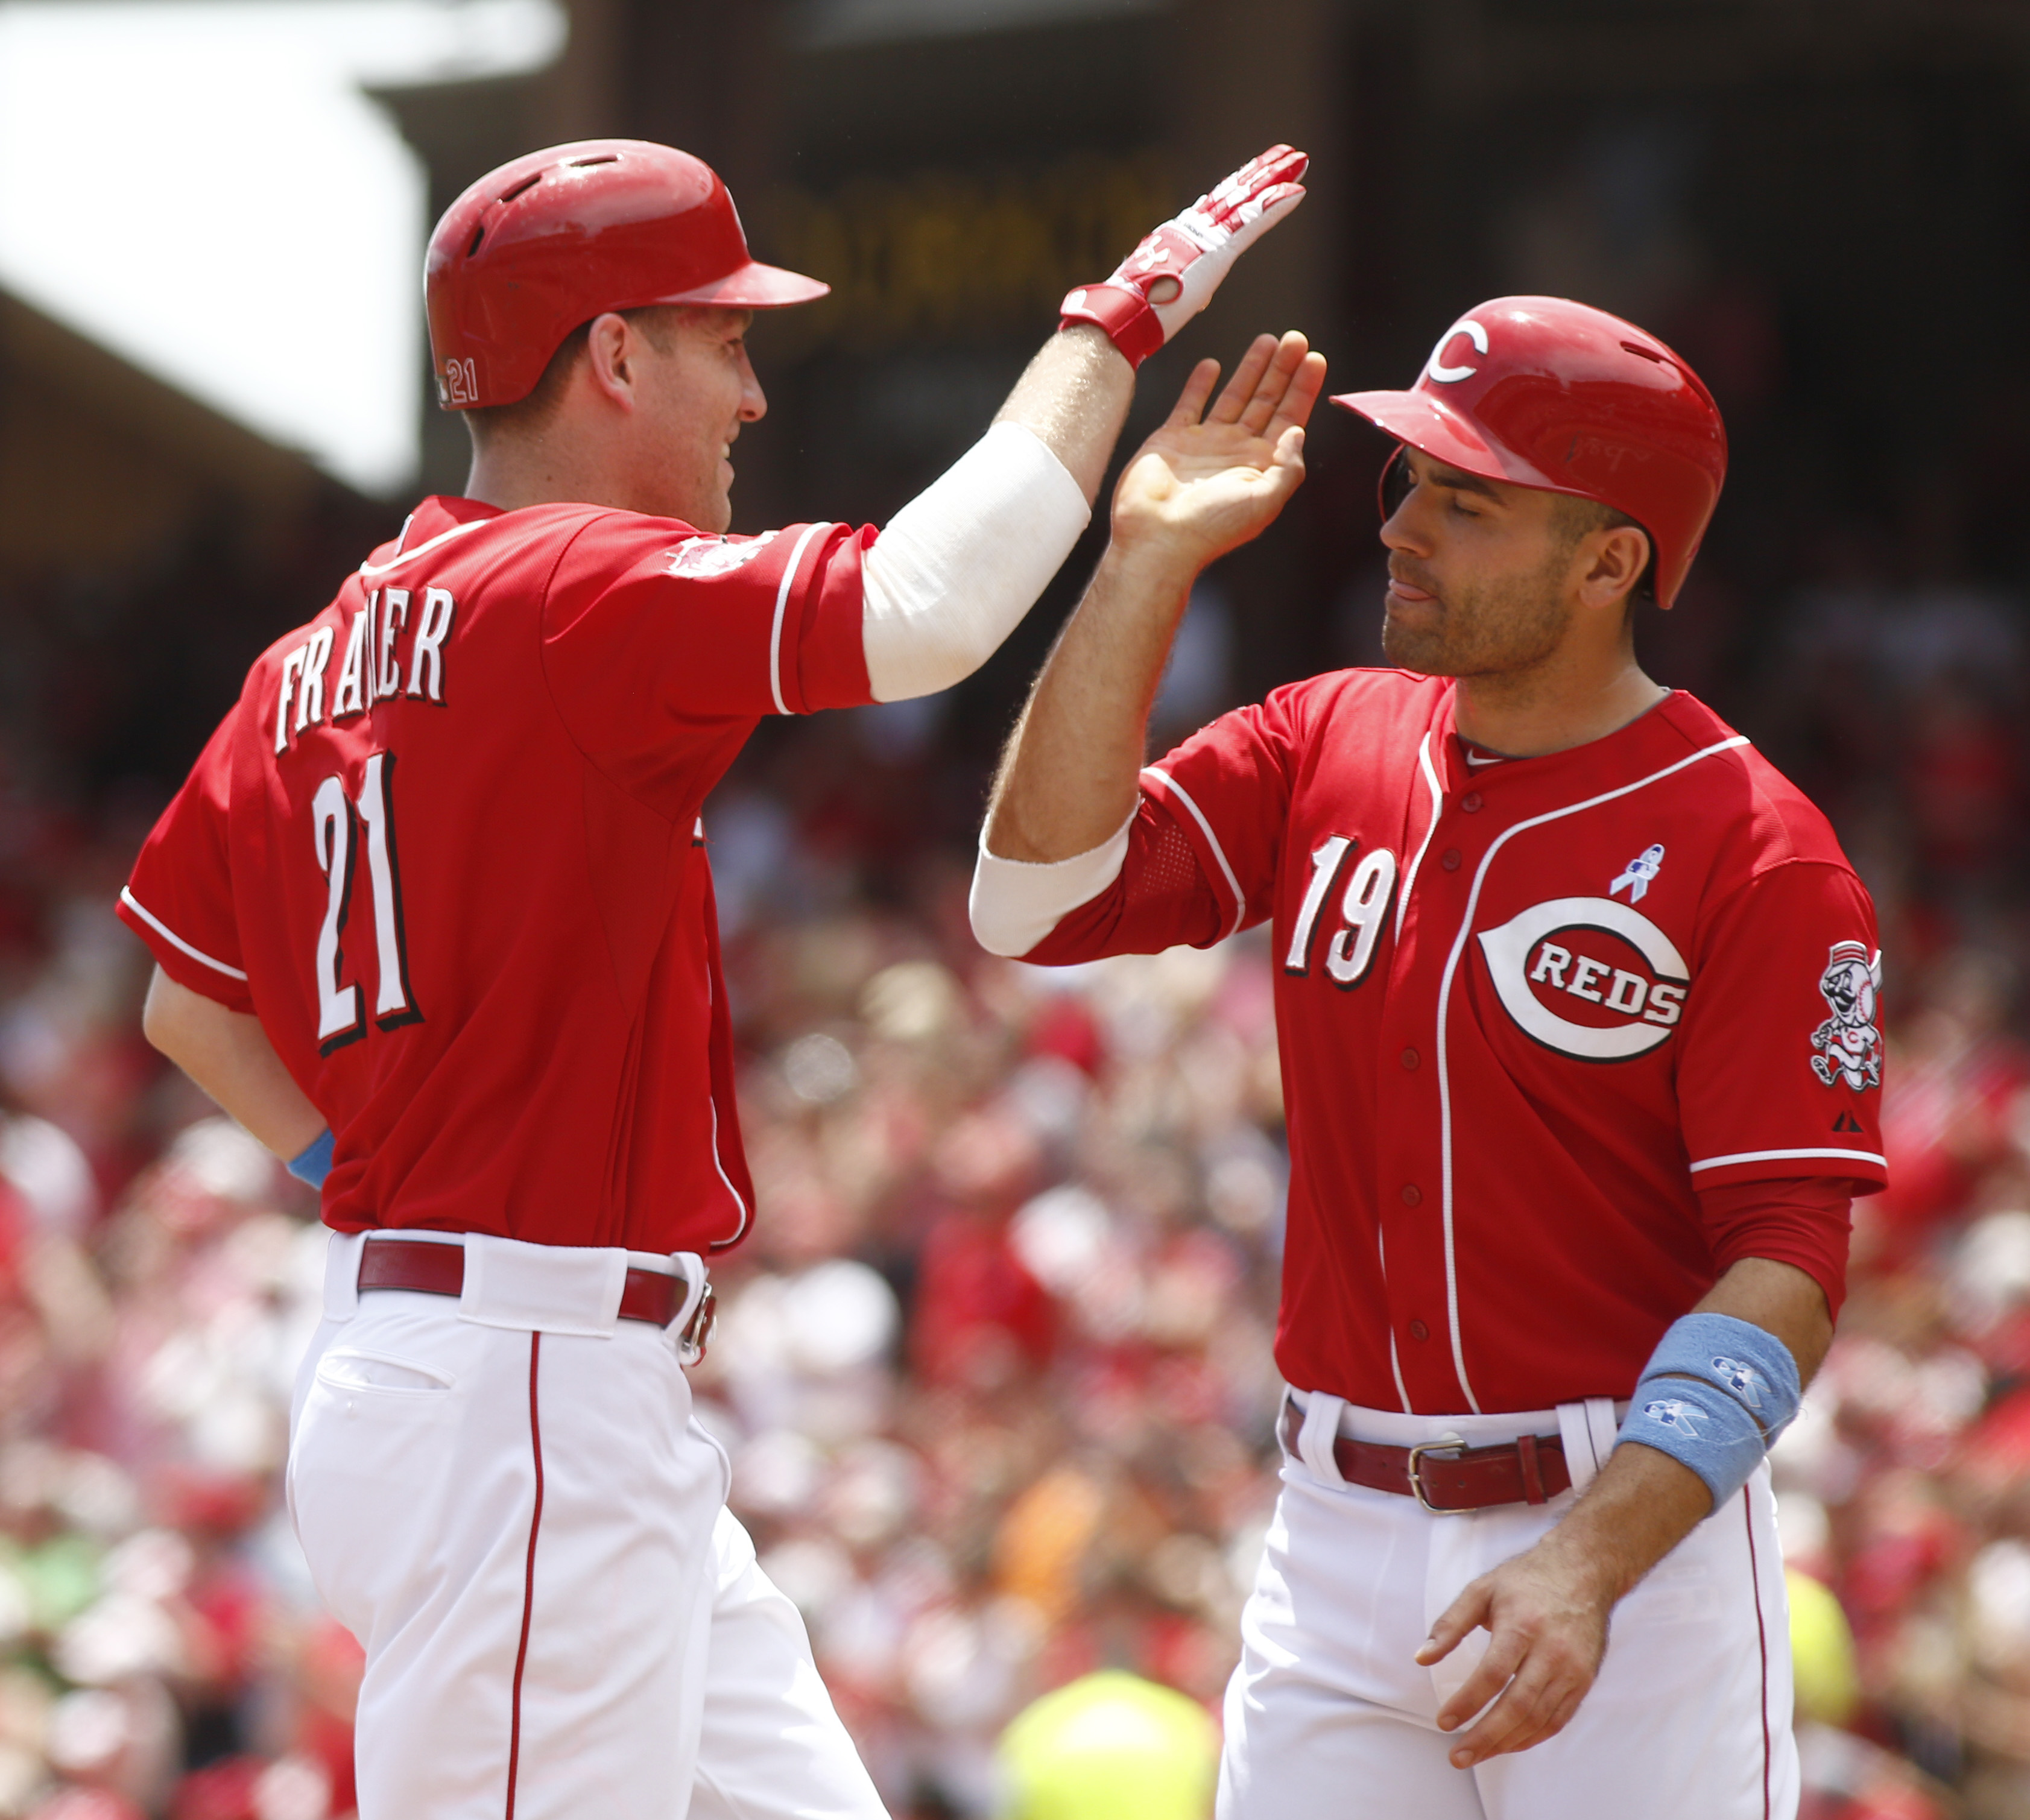 Cincinnati Reds' Todd Frazier (21) is congratulated by Joey Votto (19) after Frazier hit a two-run home run off Miami Marlins starting pitcher David Phelps in the first inning of a baseball game, Sunday, June 21, 2015, in Cincinnati. (AP Photo/David Kohl)